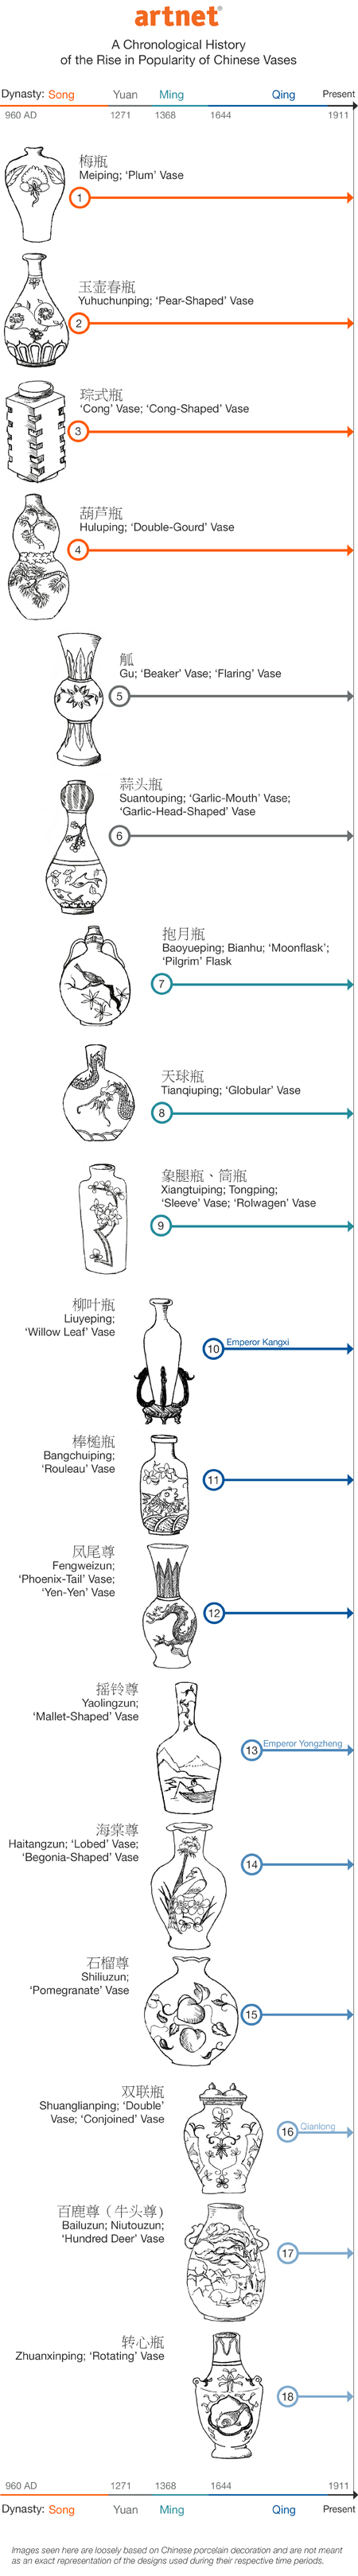 Chinese Vase infographic